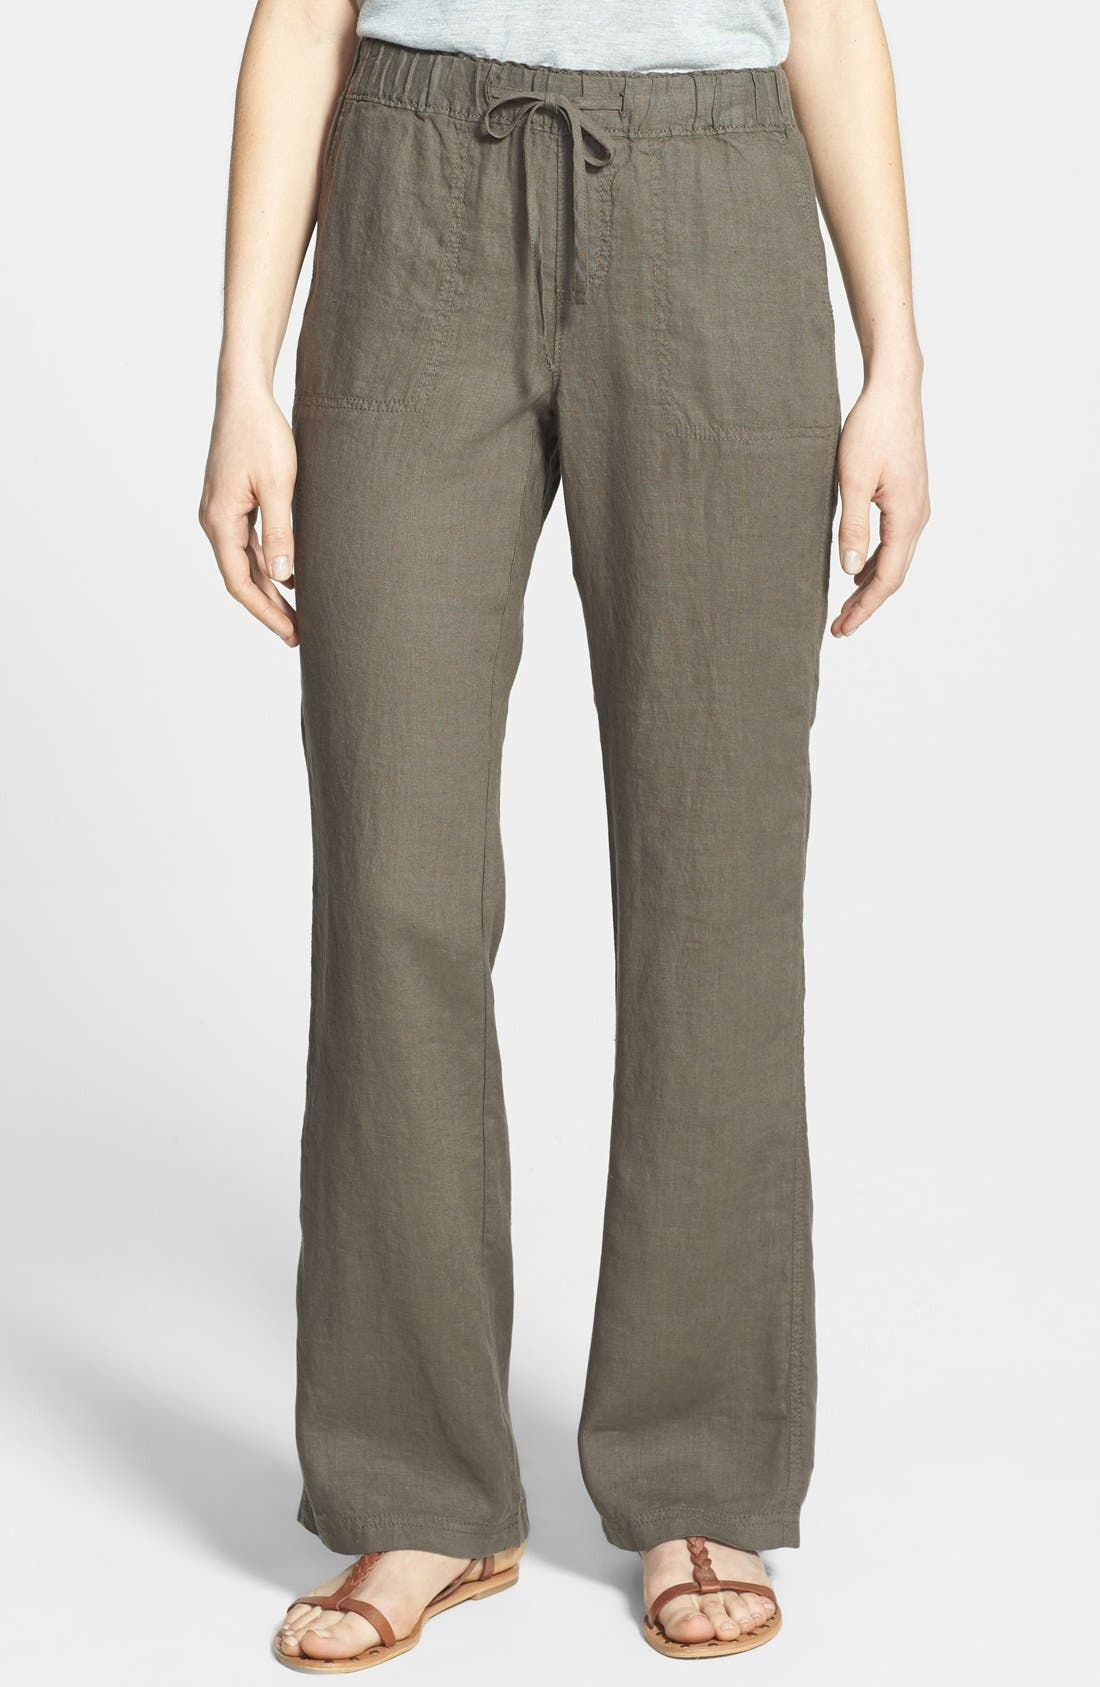 Alternate Image 1 Selected - Caslon® Drawstring Waist Linen Pants (Regular & Petite)